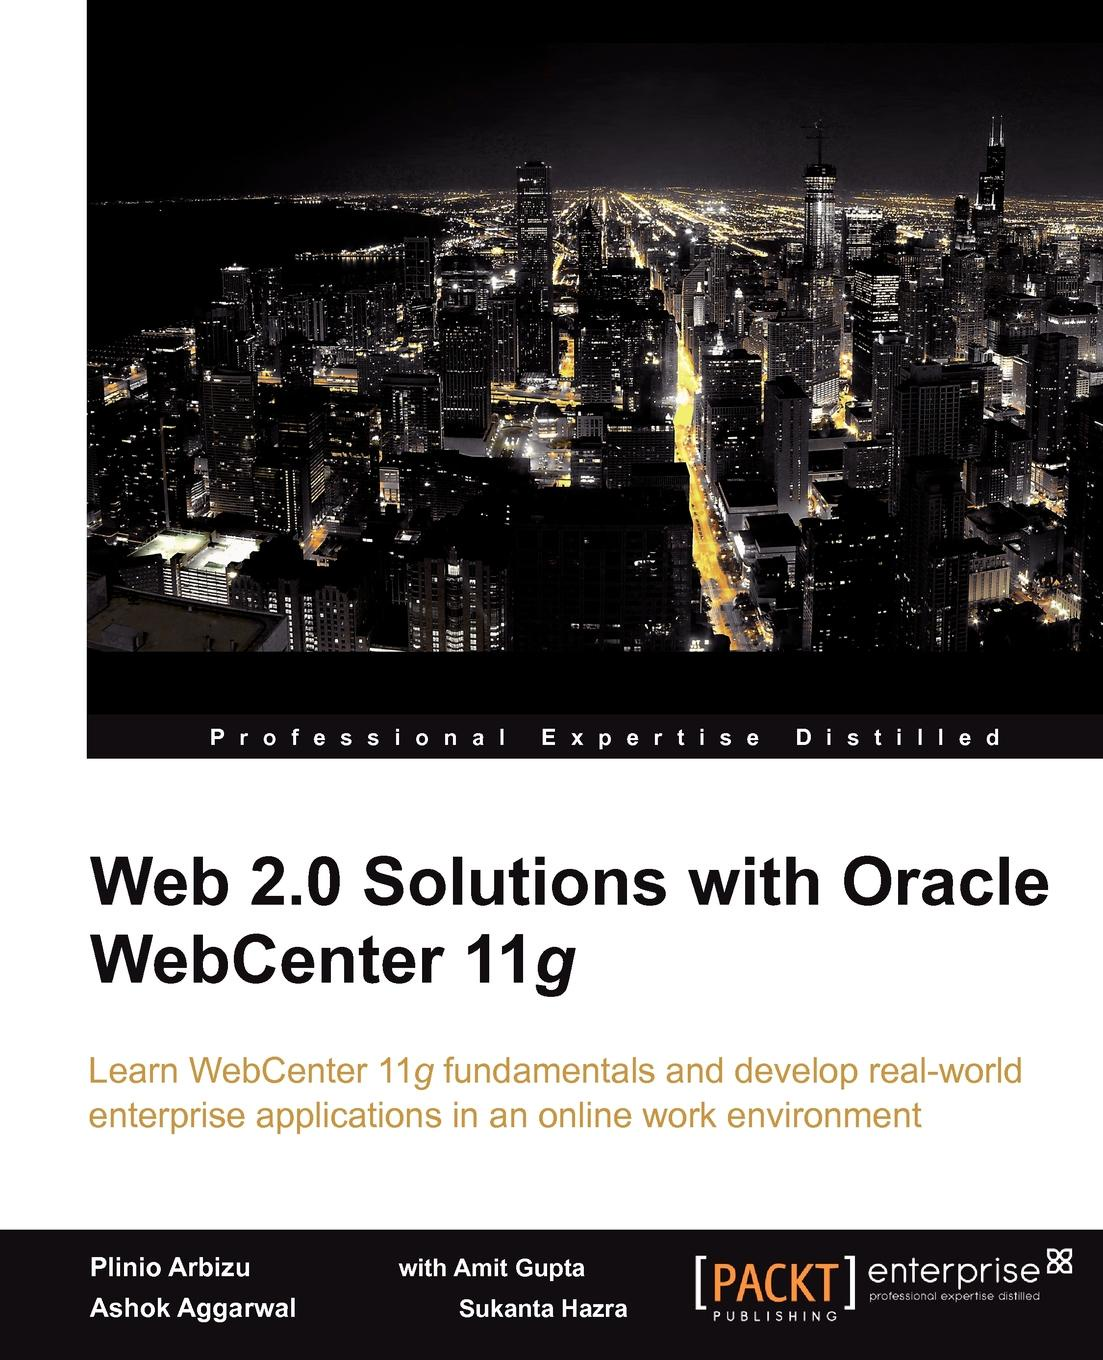 Plinio Arbizu, Ashok Aggarwal Web 2.0 Solutions with Oracle Webcenter 11g deepak vohra processing xml documents with oracle jdeveloper 11g lite